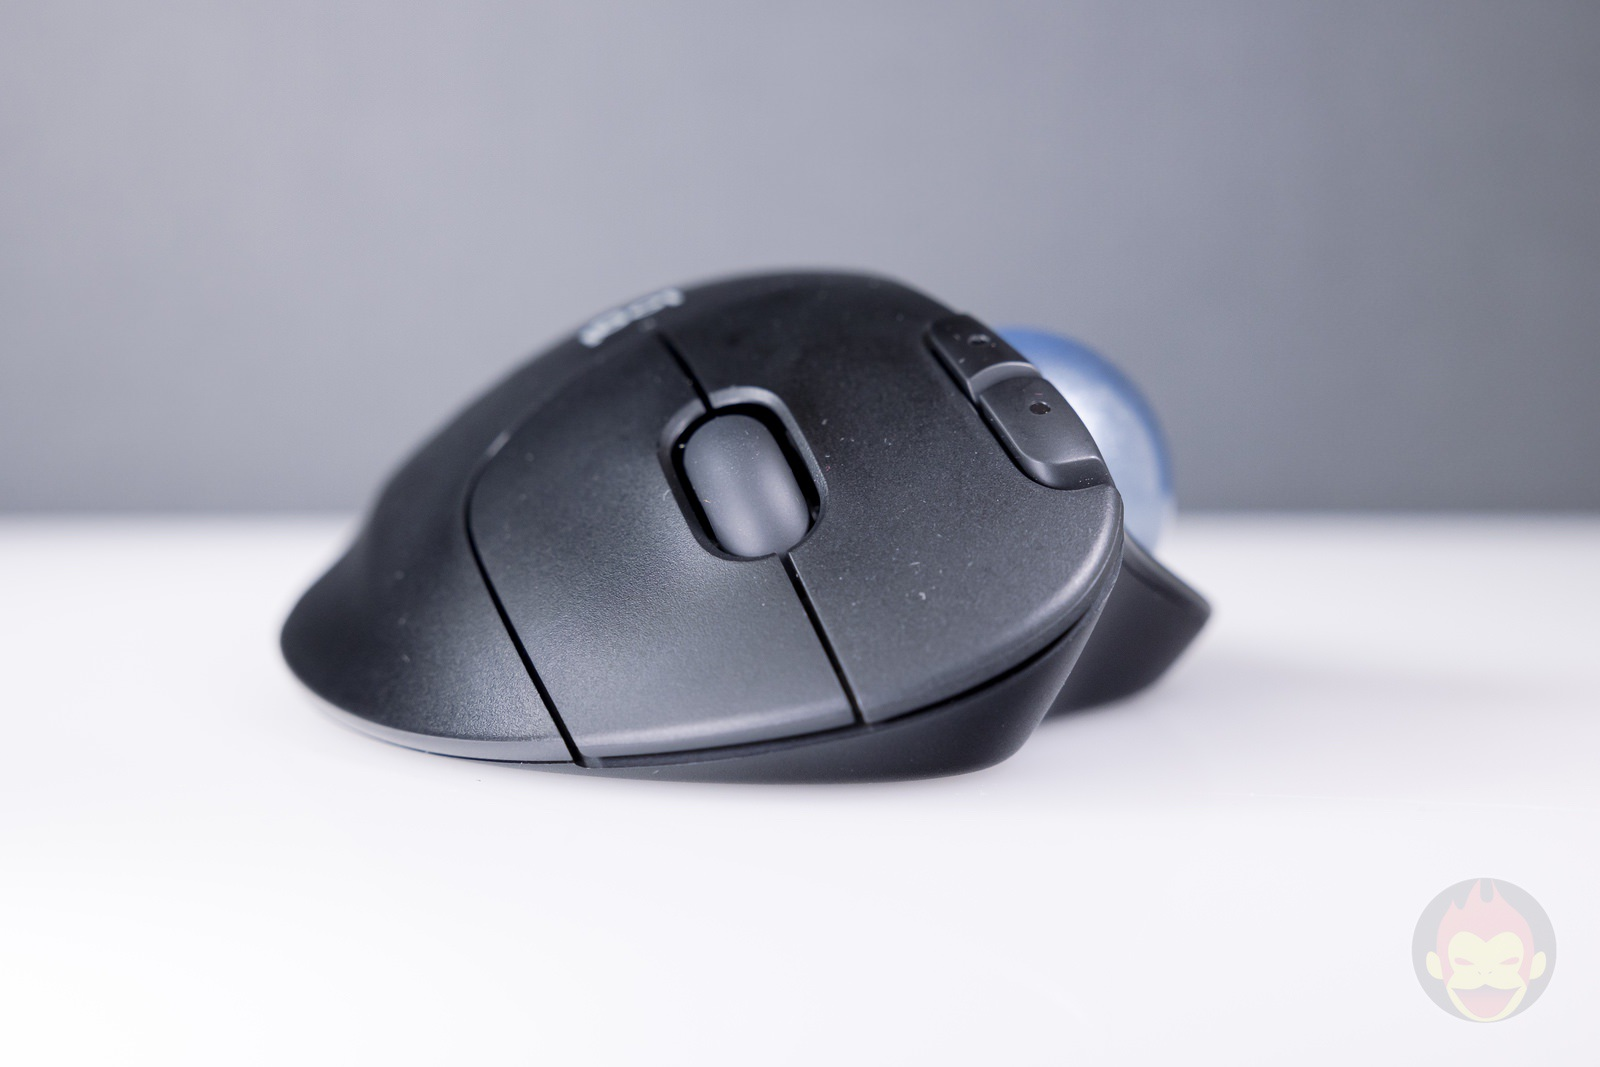 Logicool ERGO M575S Trackball Hands on 09